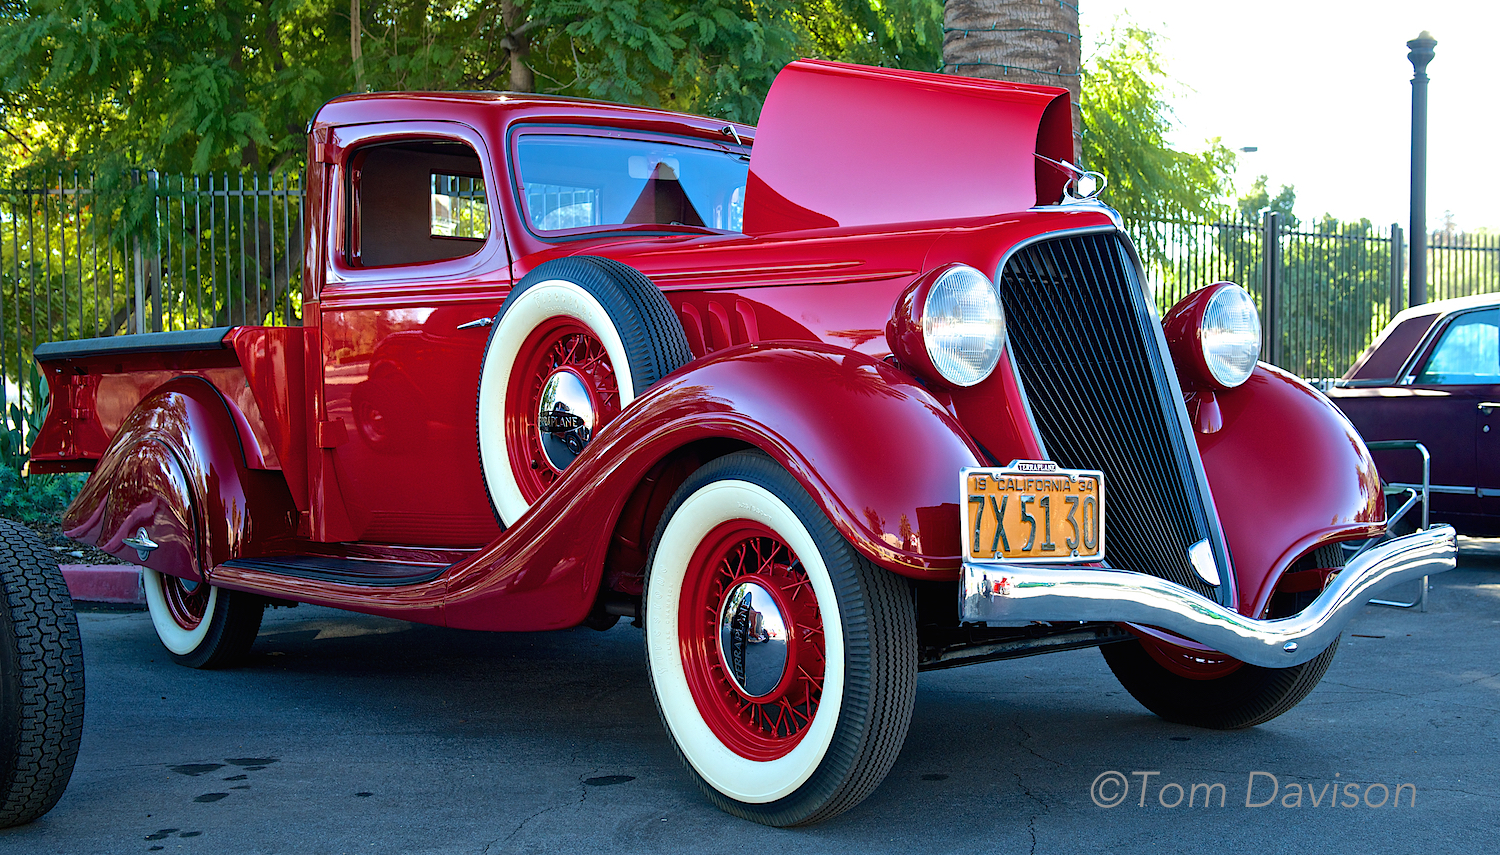 1934 Terraplane. Very rare. One of the few pickups designed to compete with cars . . . art deco styling.